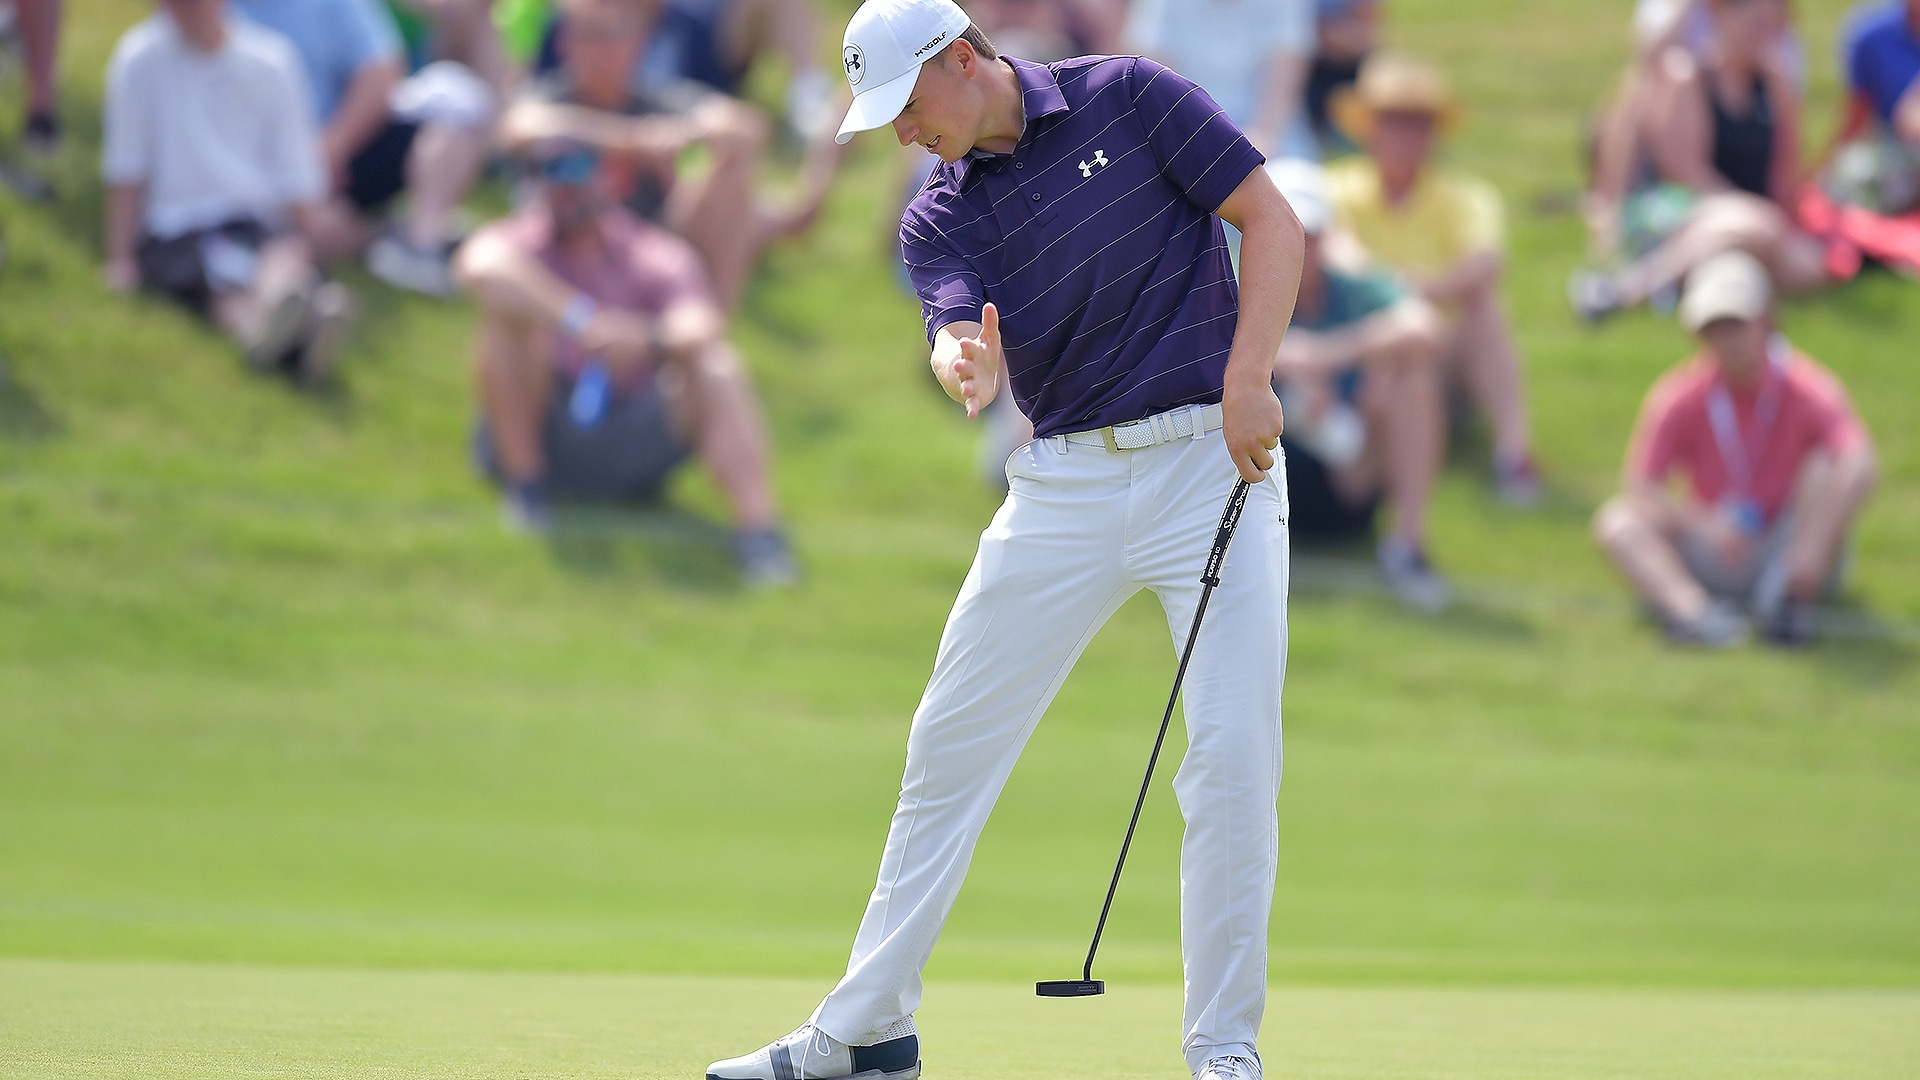 Jordan Spieth's putter switch drawing some attention | Golf Channel